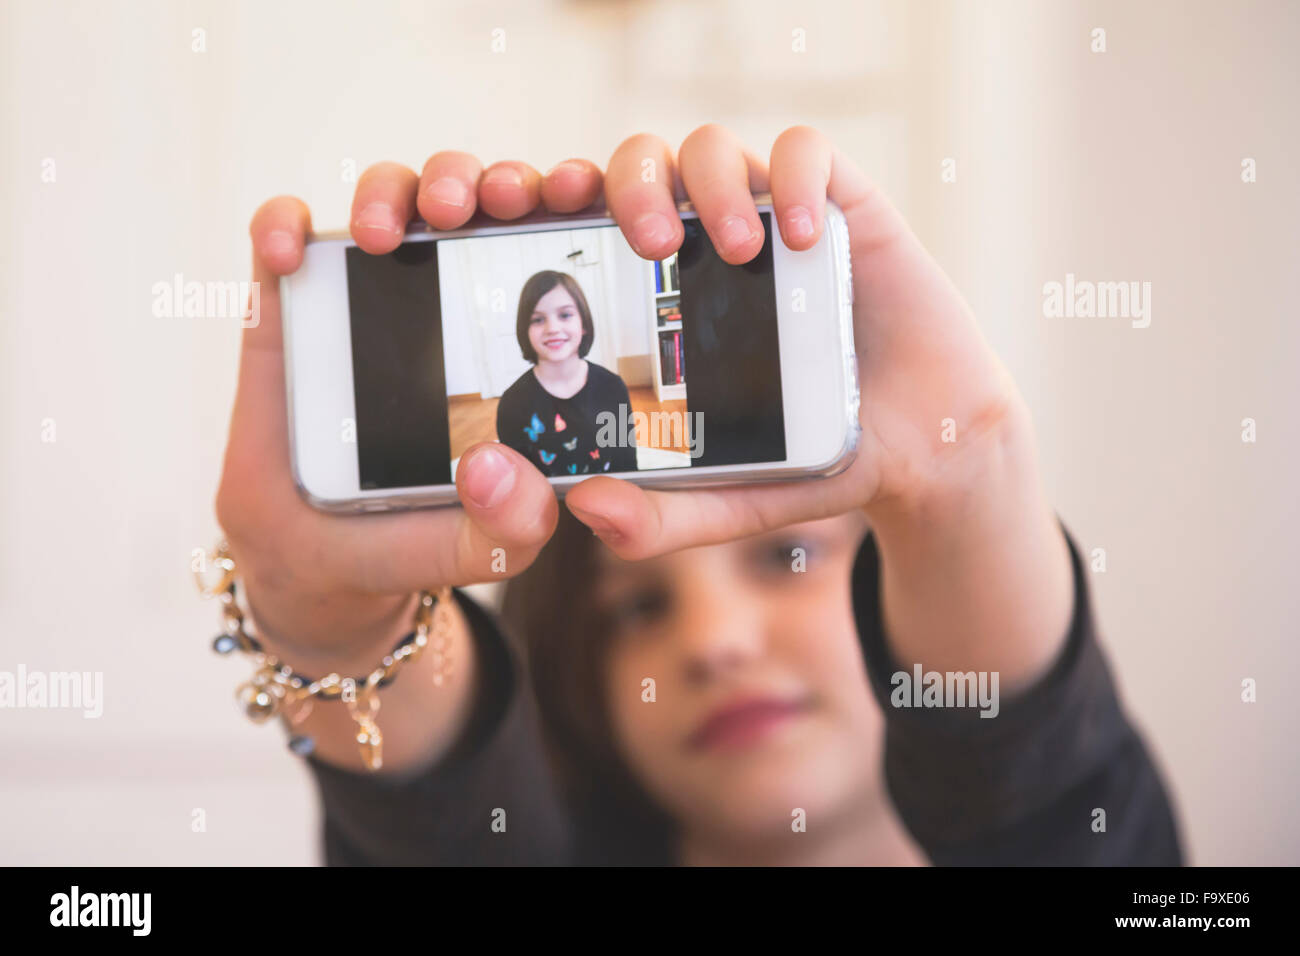 Hands of girl showing smartphone with photography of herself - Stock Image